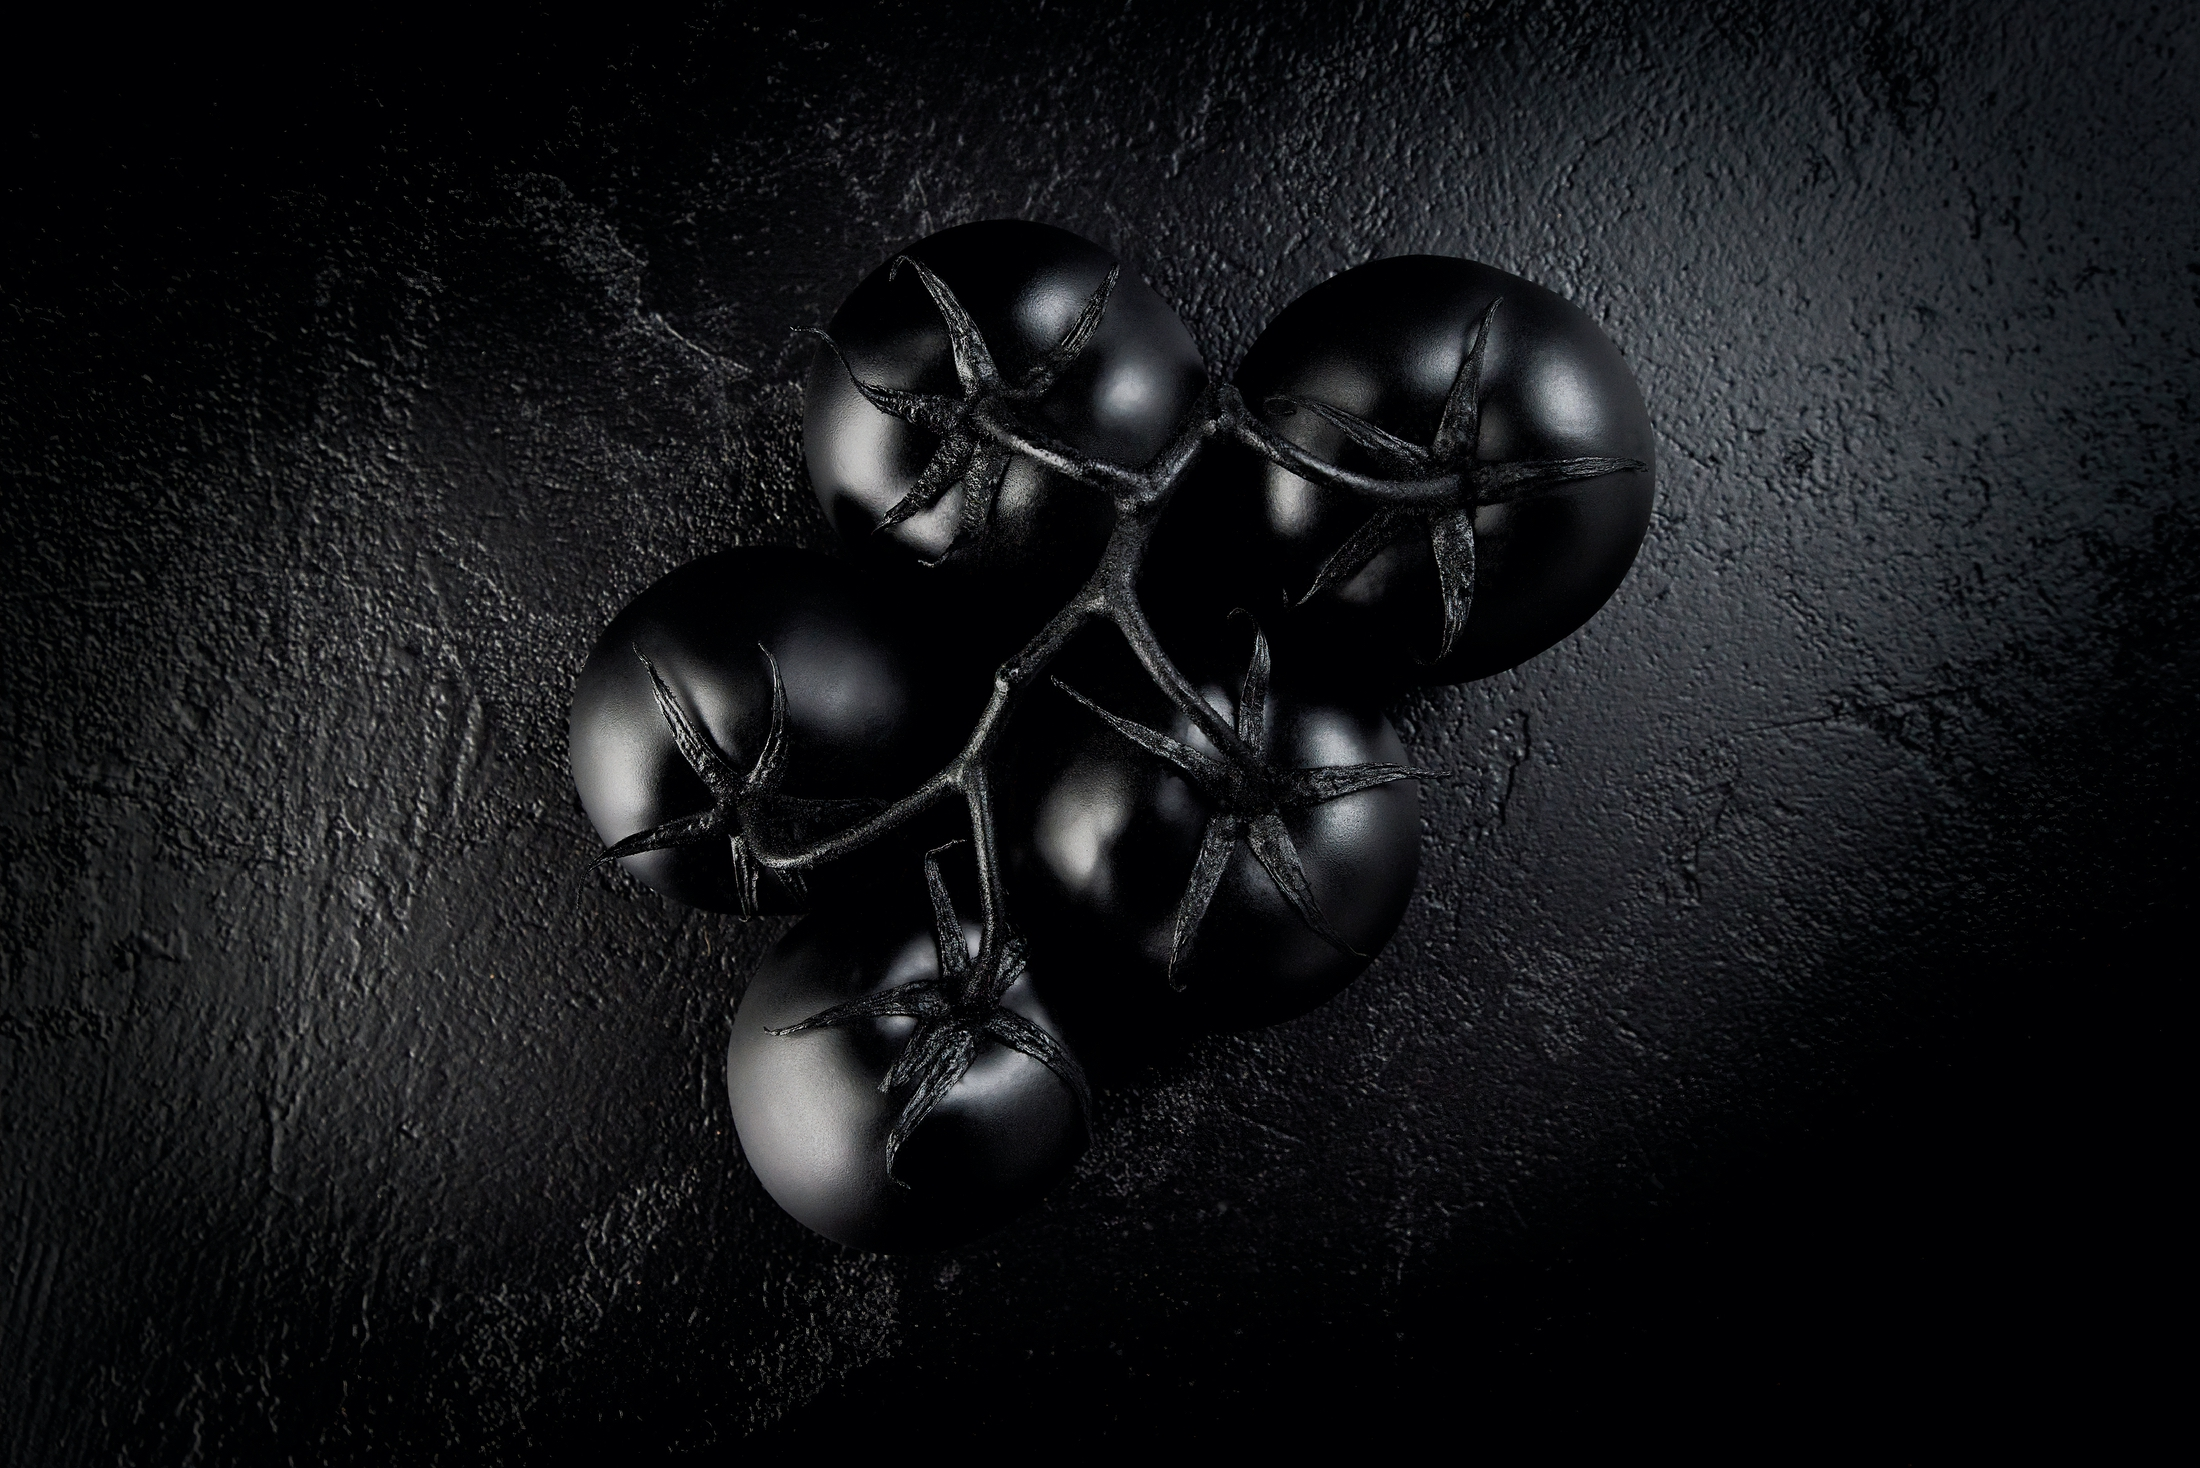 AaronVan_Food_FineArt_Black_Tomatoes